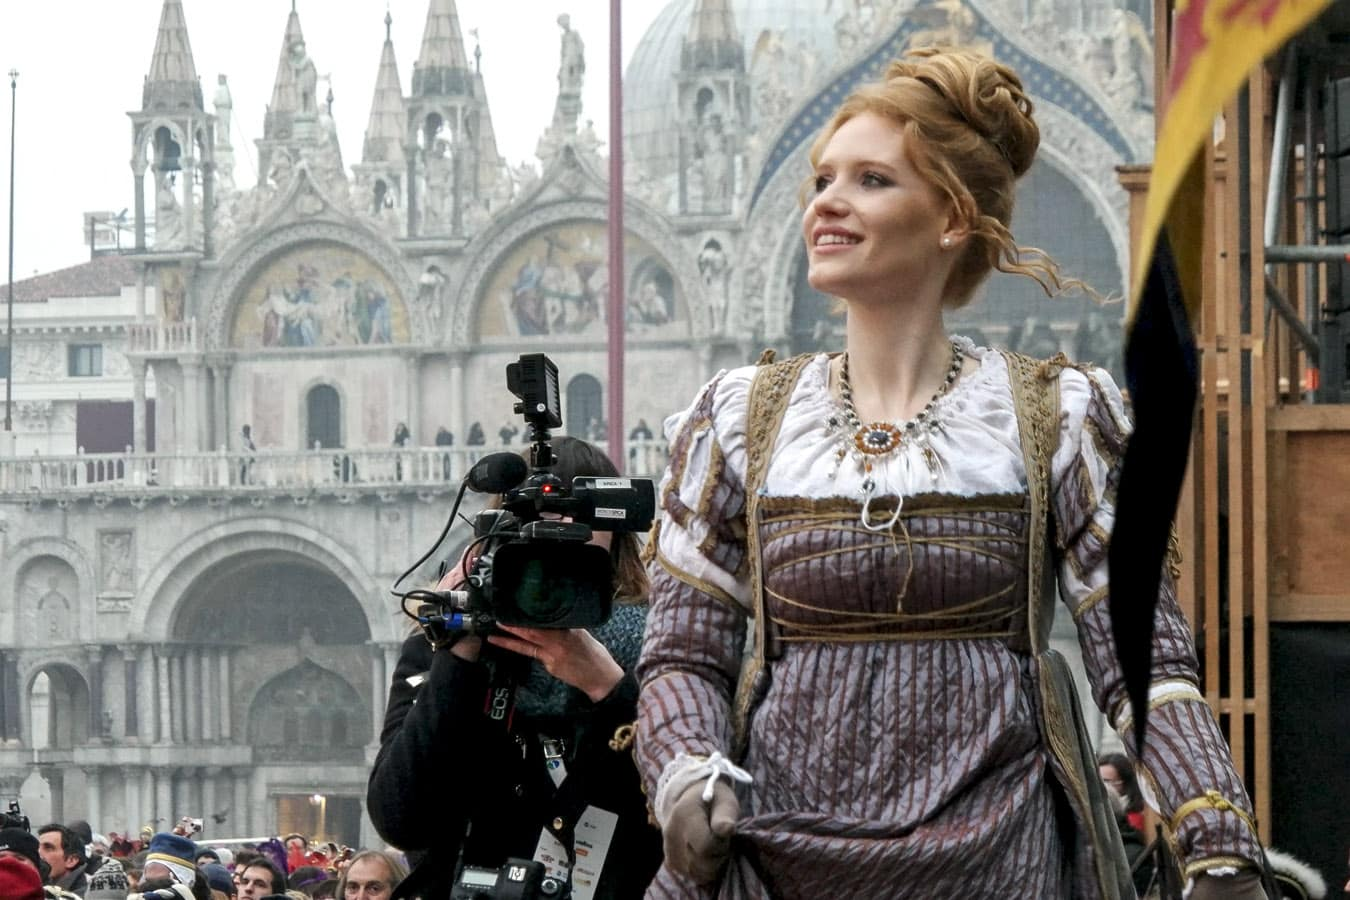 The Maria Claudia Marchiori walking up the stage. The Saint Mark's Basilica on the background